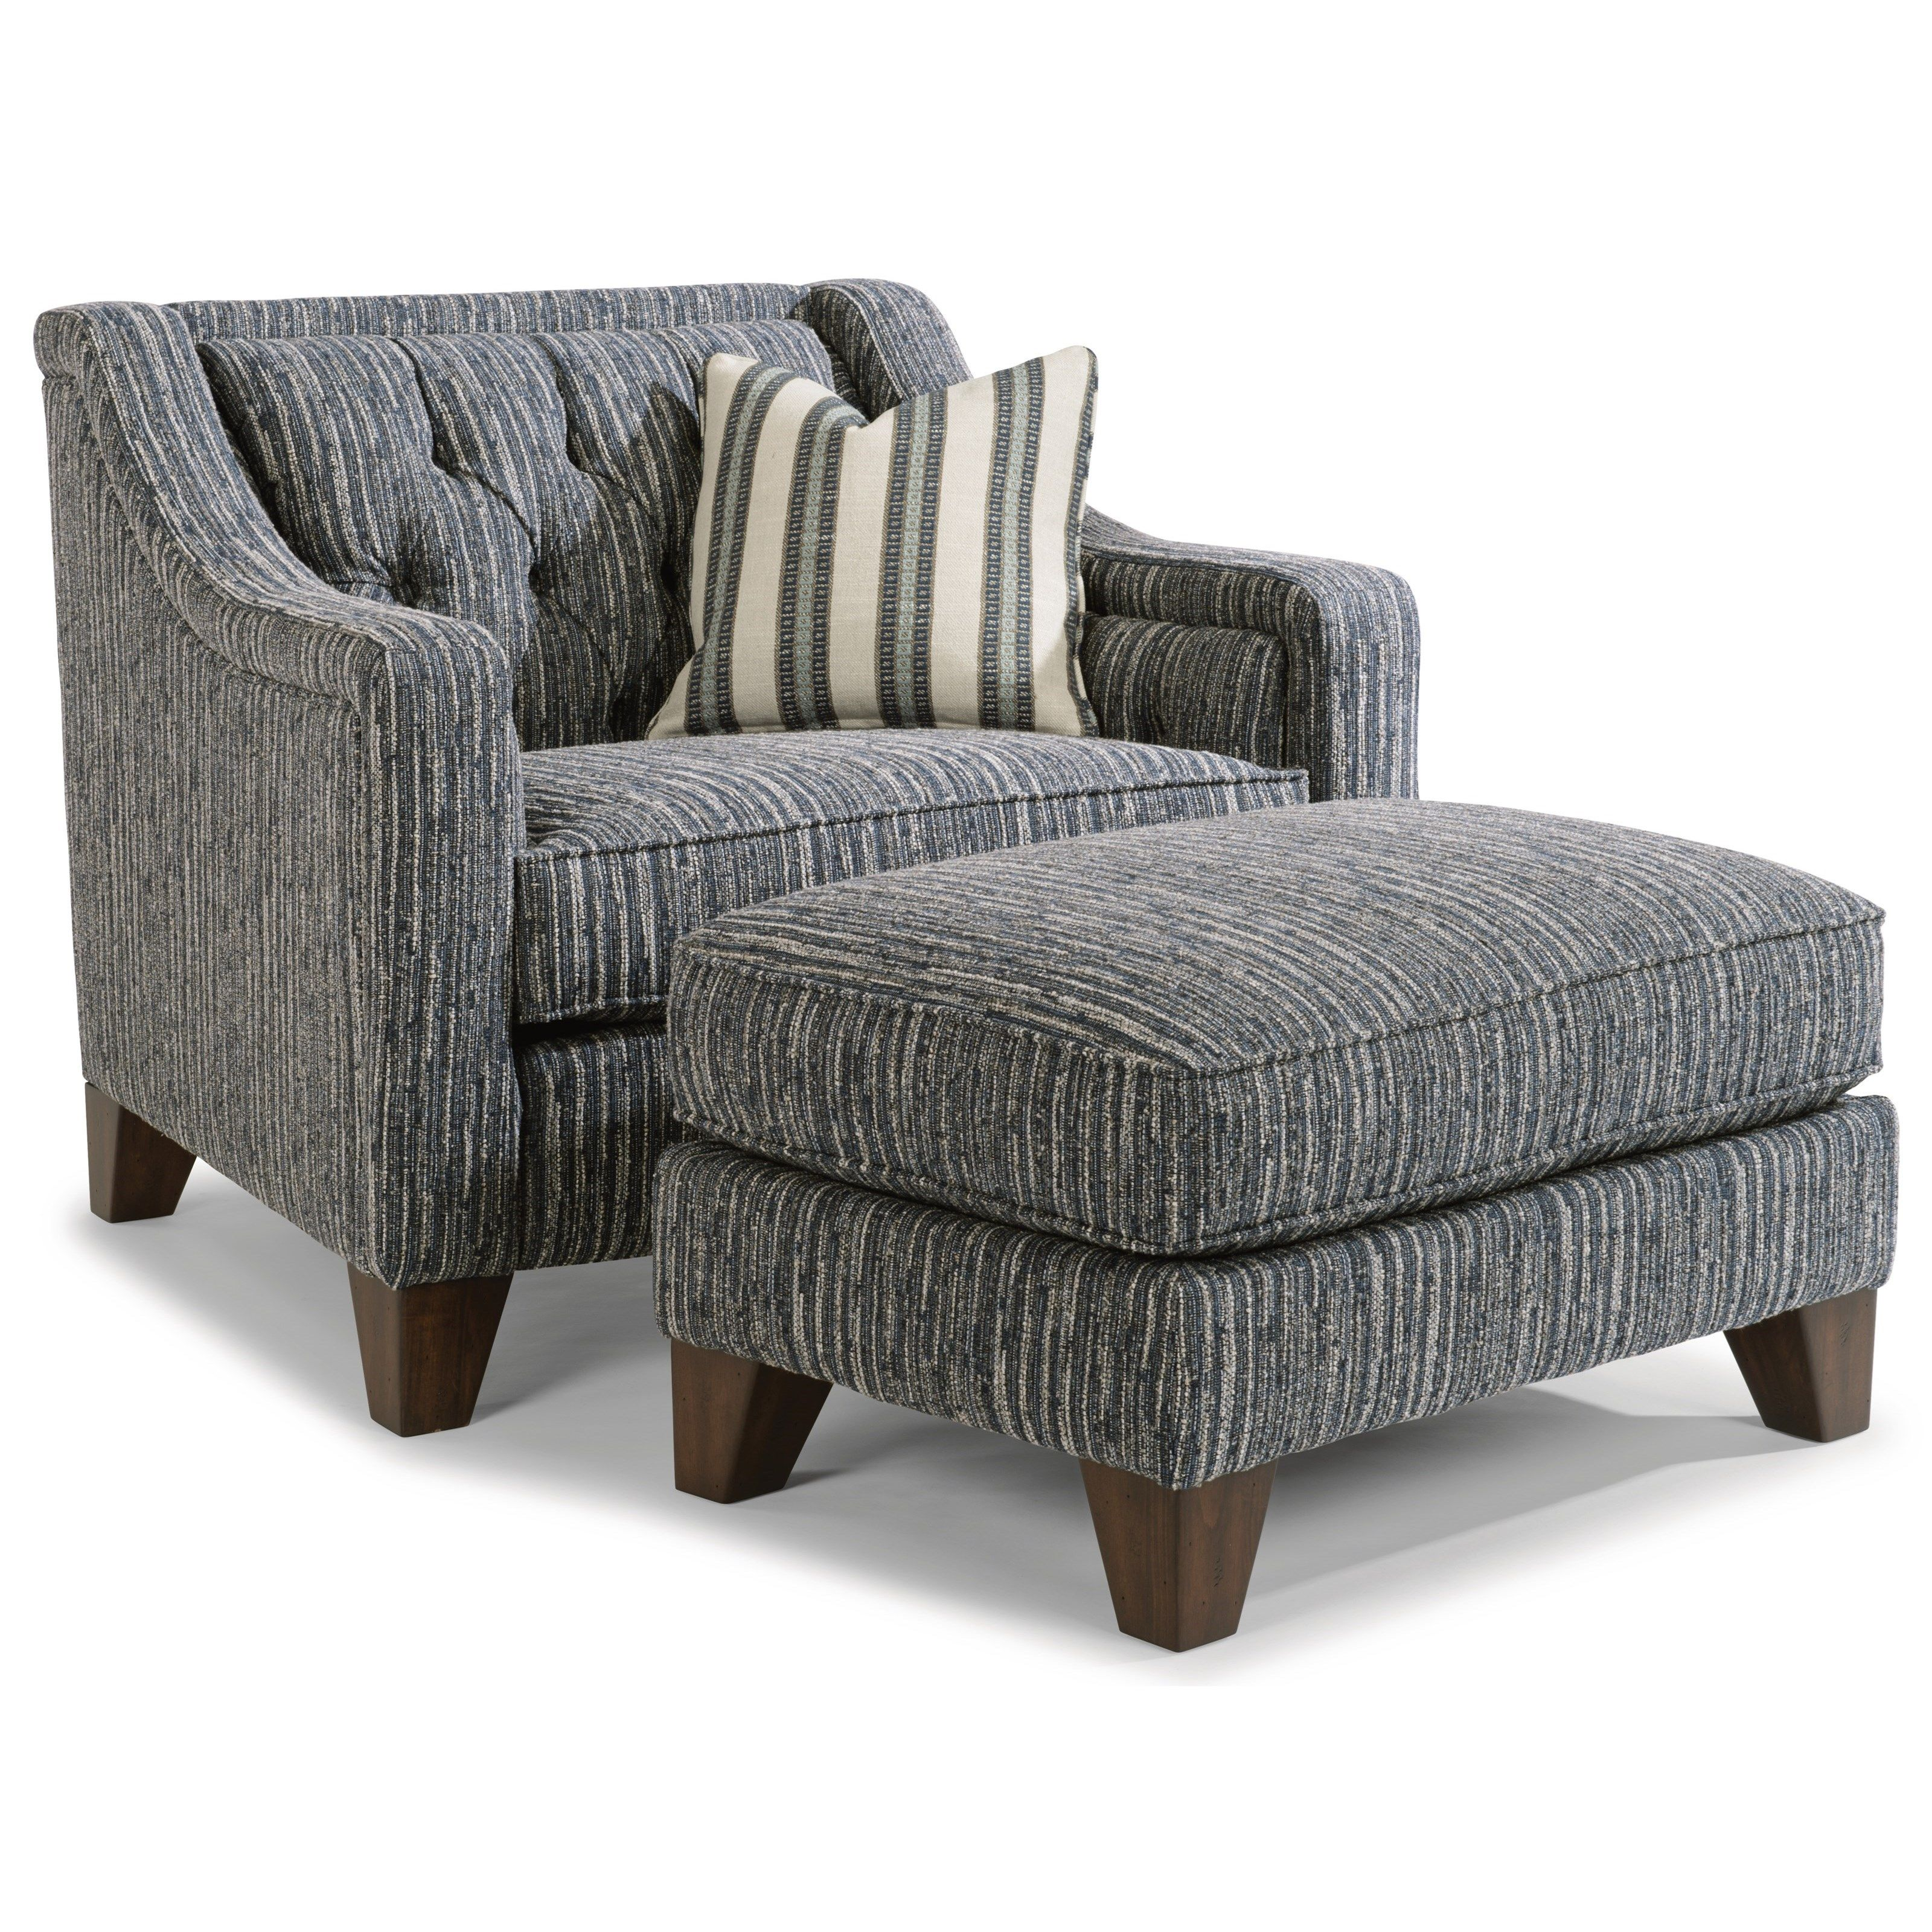 Best Sullivan Chair And Ottoman Set By Flexsteel At Coconis 400 x 300